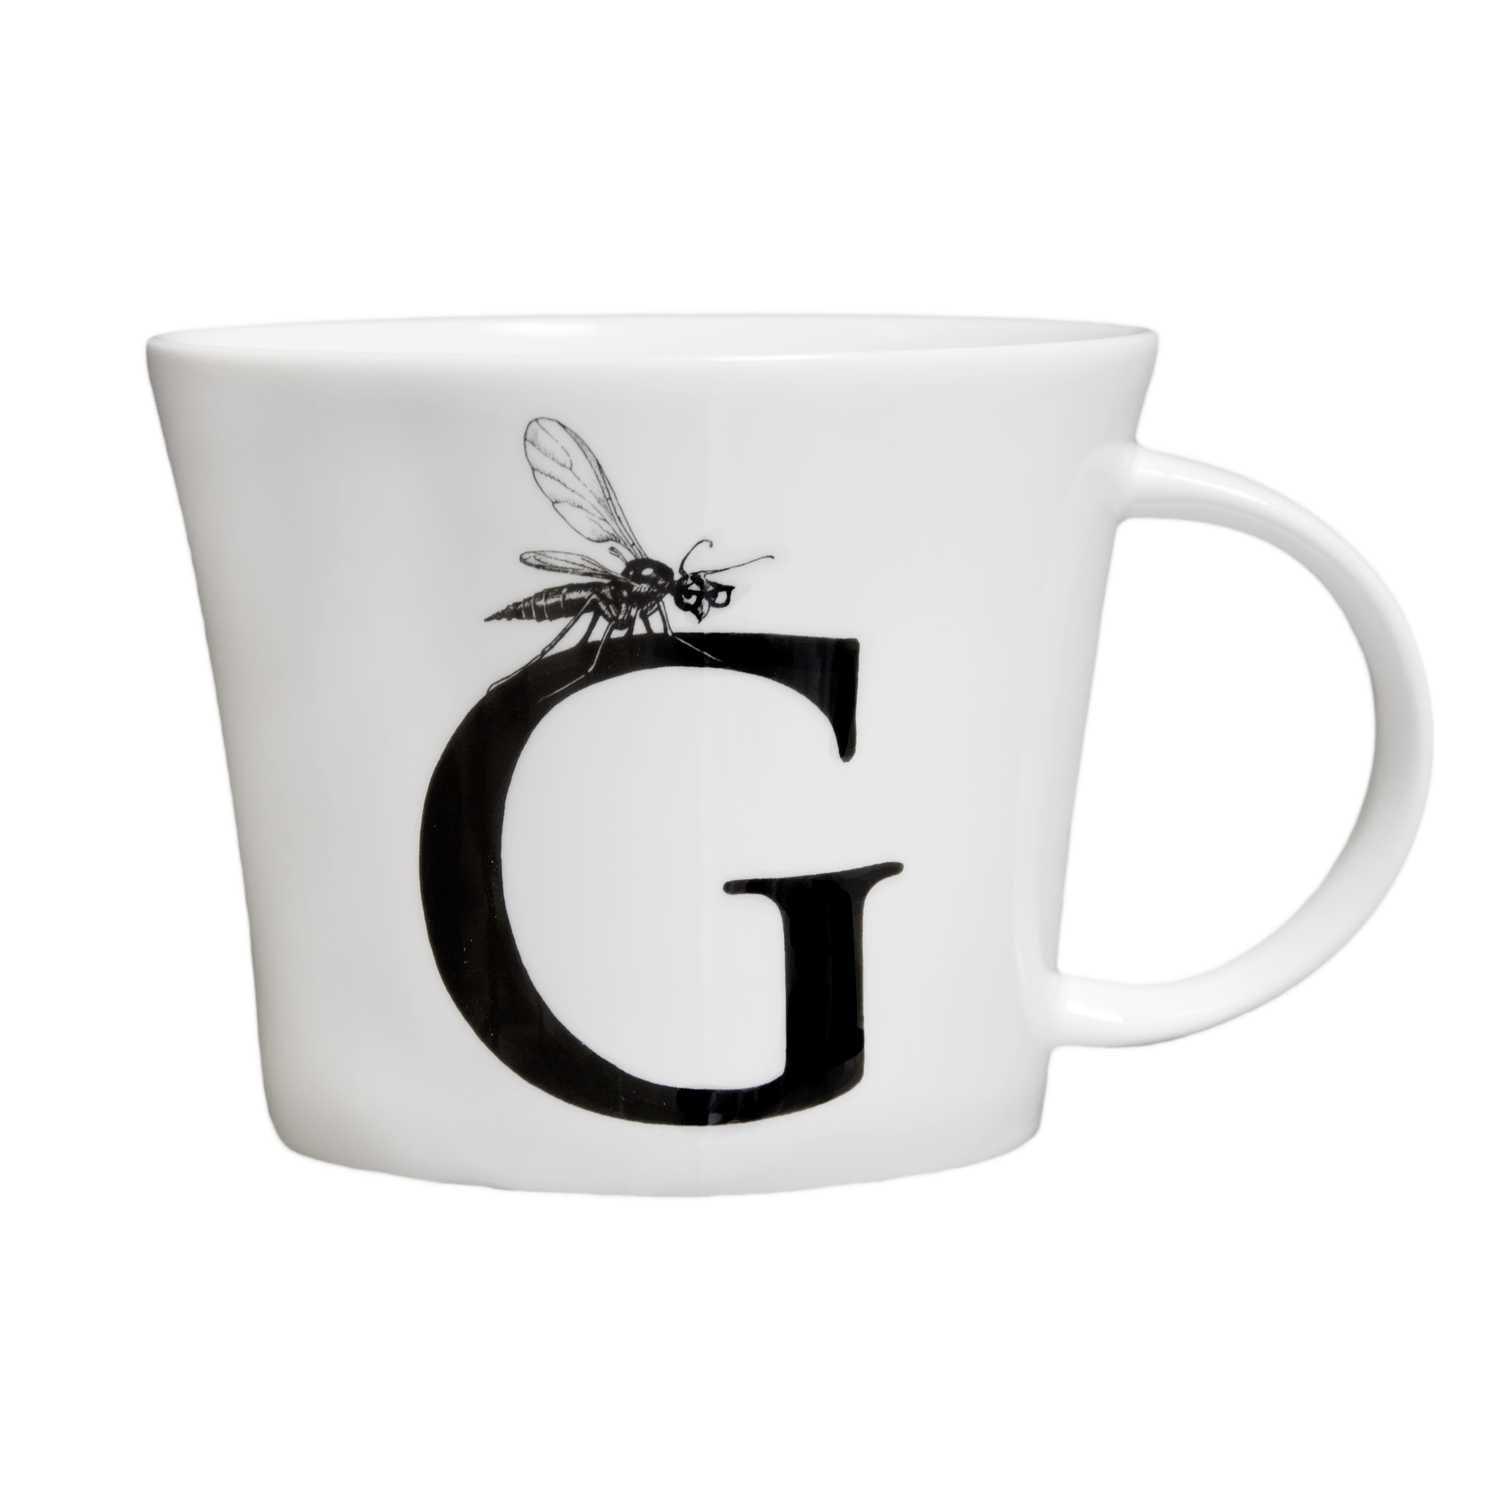 G - Genius Gnat Mighty Mug-0